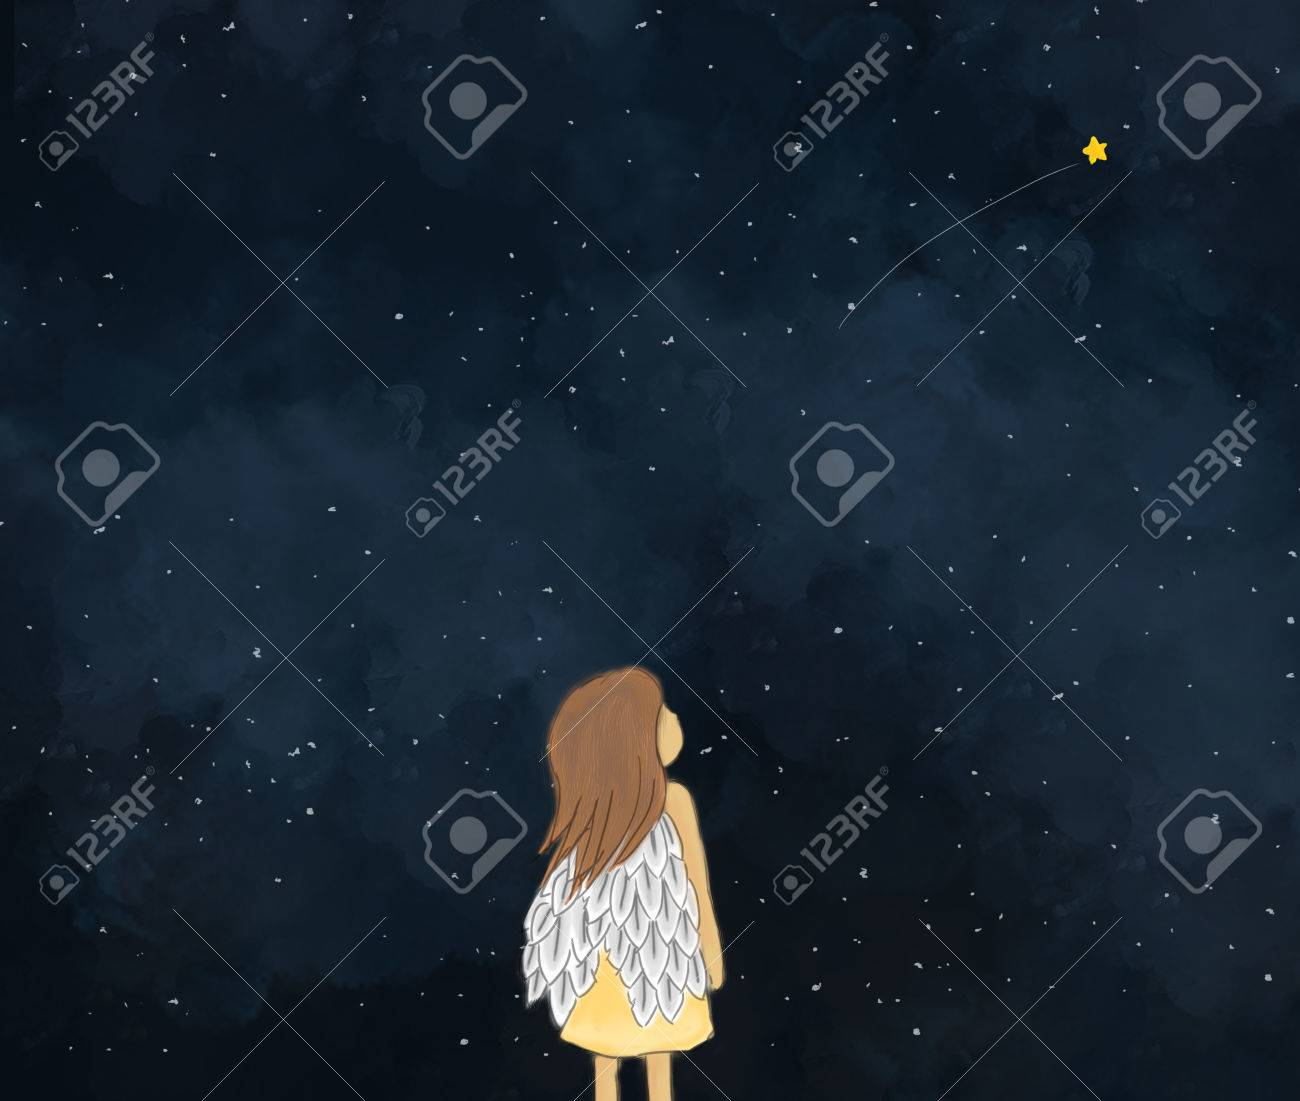 1300x1101 Illustration Drawing Of A Little Girl Angel Looking At Shooting